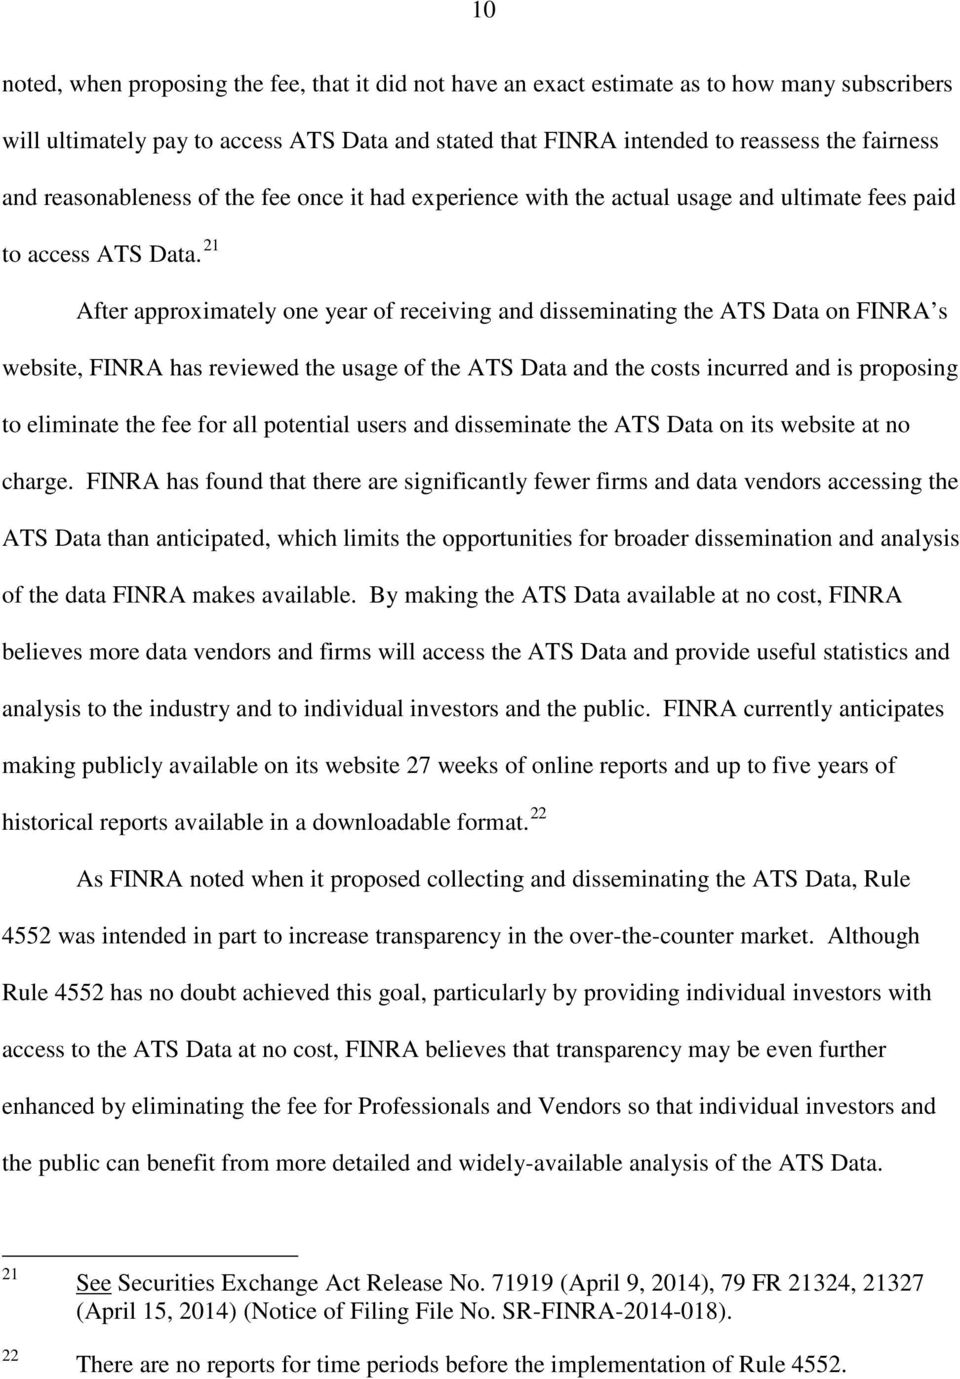 21 After approximately one year of receiving and disseminating the ATS Data on FINRA s website, FINRA has reviewed the usage of the ATS Data and the costs incurred and is proposing to eliminate the